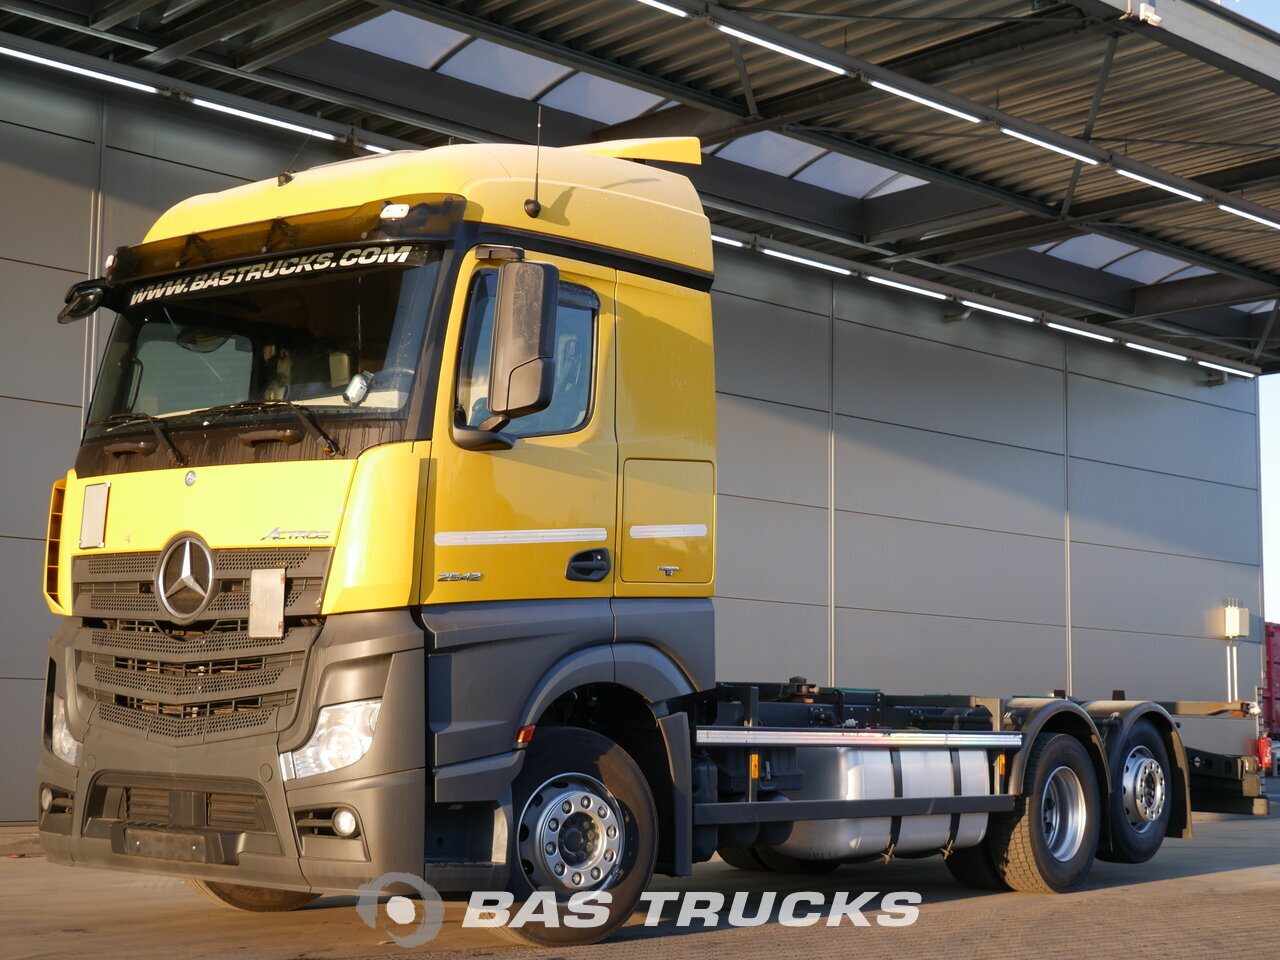 mercedes actros 2542 l lkw euro 6 34800 bas trucks. Black Bedroom Furniture Sets. Home Design Ideas